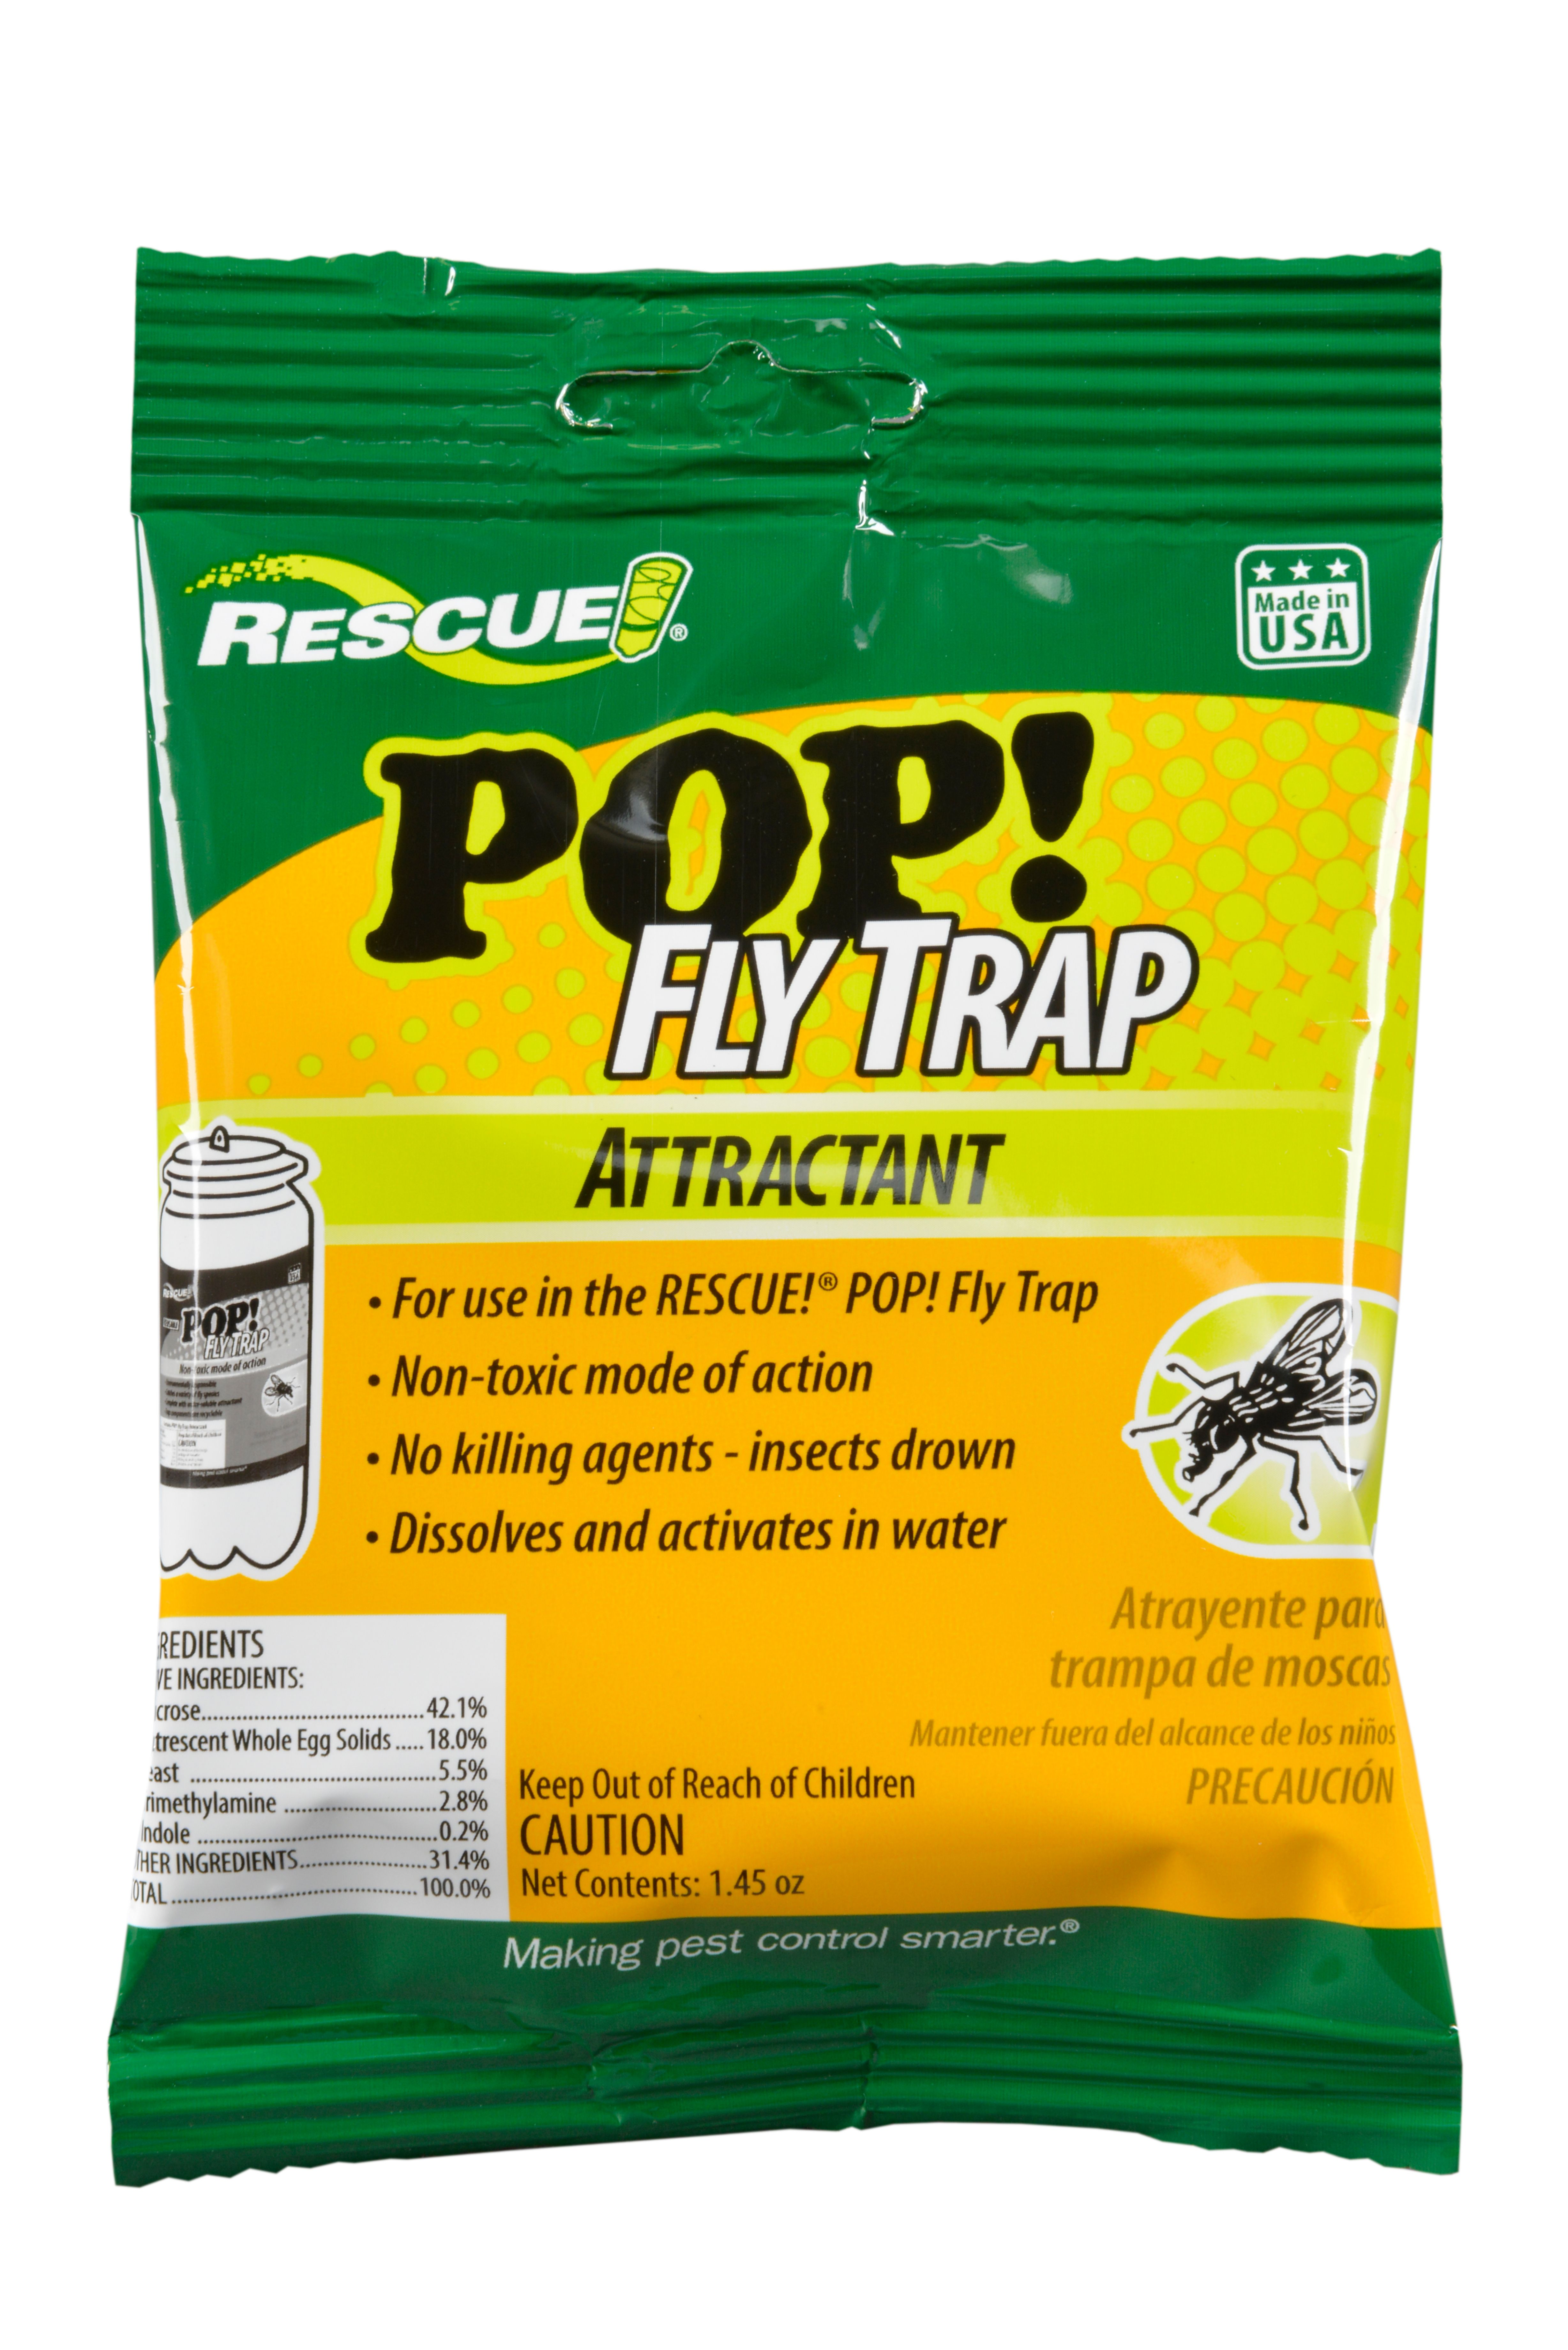 RESCUE! TrapStick for Flies Disposable Fly Trap at Lowes com